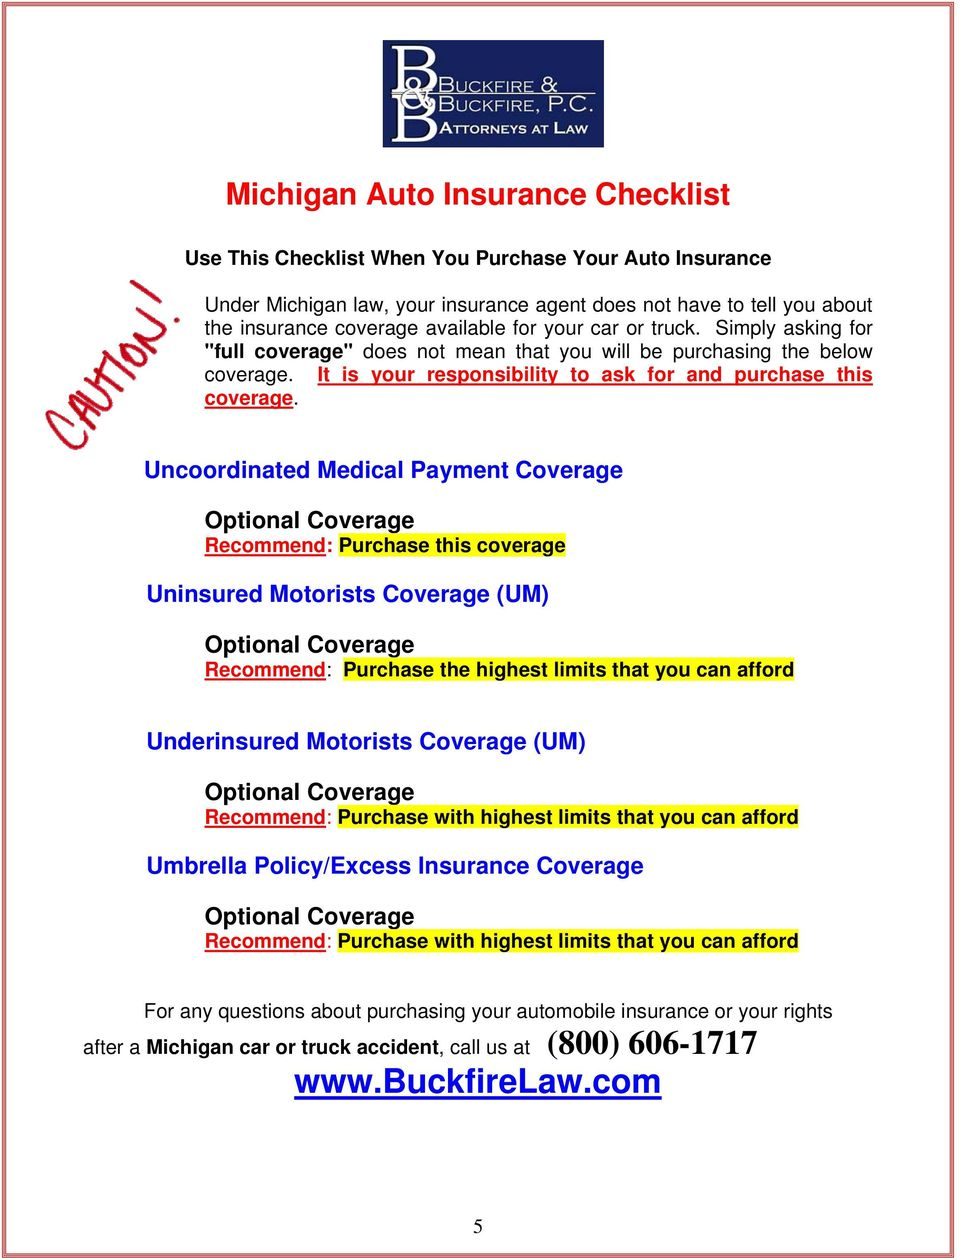 Uncoordinated Medical Payment Coverage Optional Coverage Recommend: Purchase this coverage Uninsured Motorists Coverage (UM) Optional Coverage Recommend: Purchase the highest limits that you can